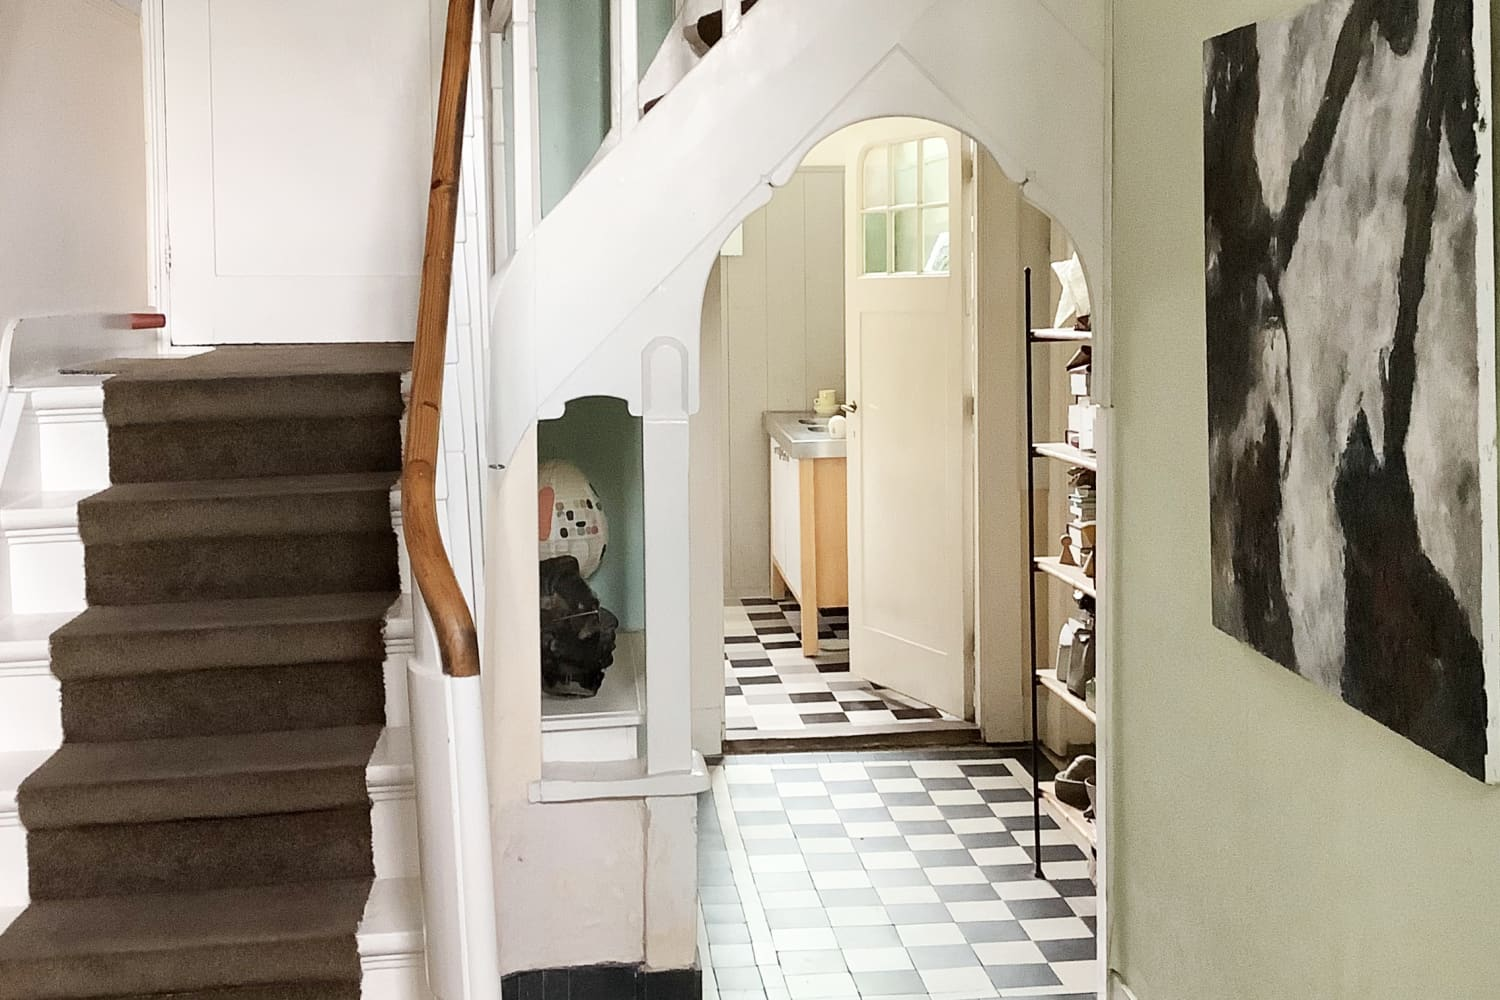 A 1904 Dutch Canal House Has Over 22 Lamps, Quirky Art, and Very Unique Tiles